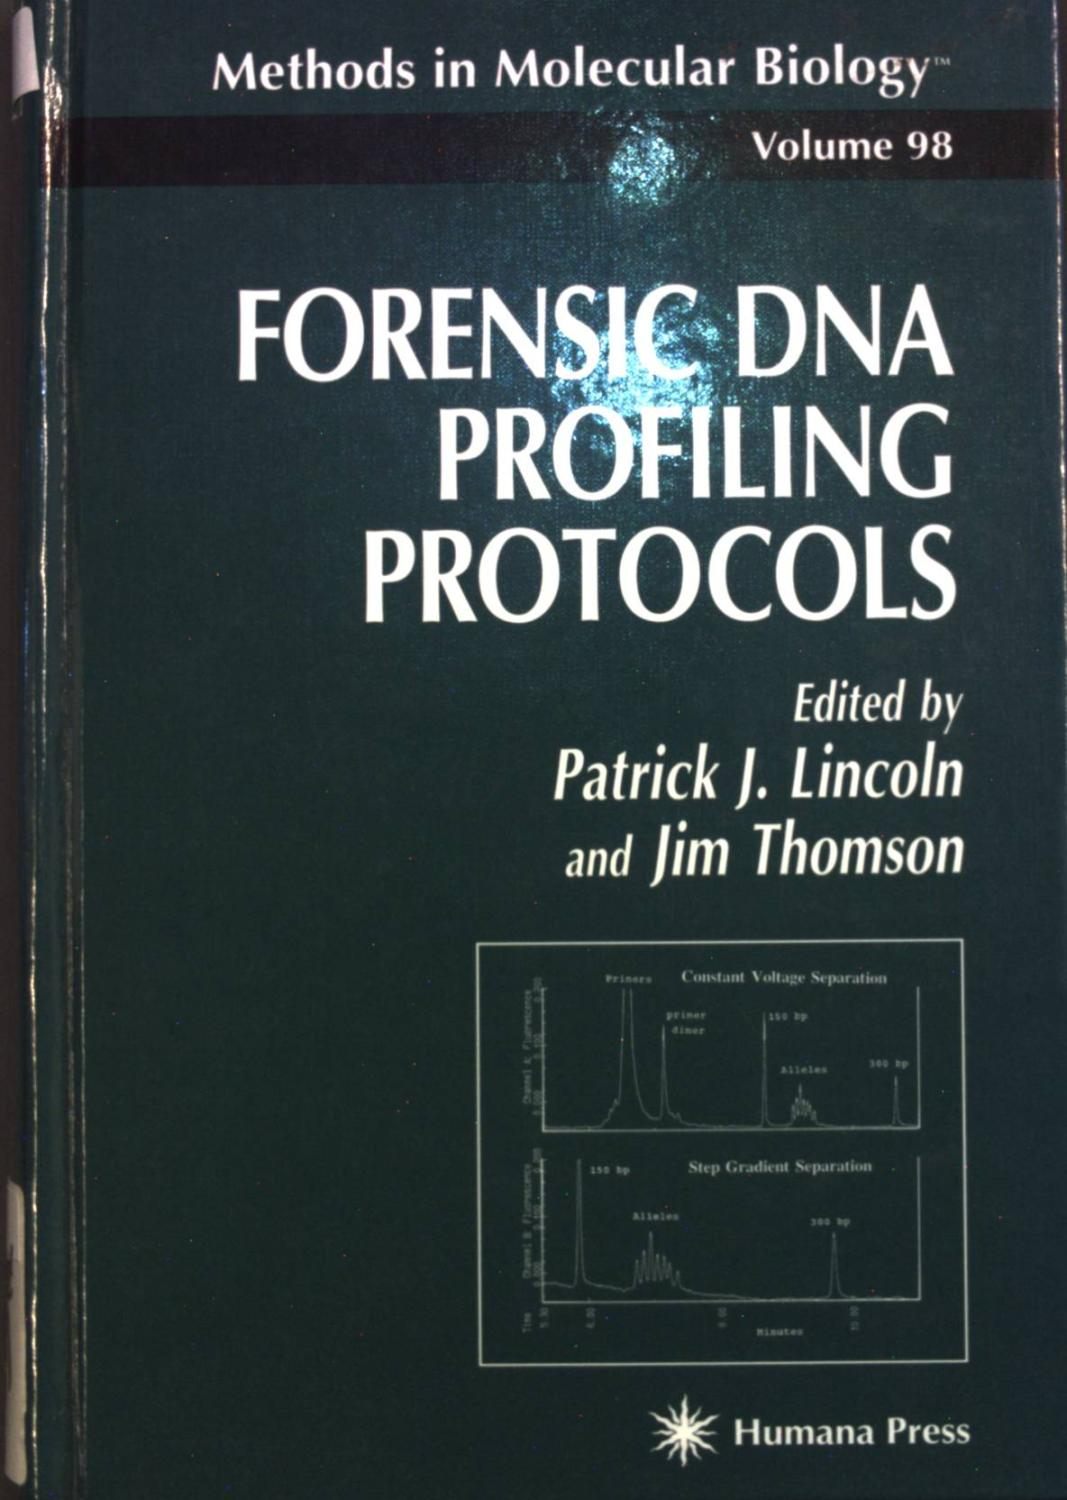 Forensic DNA Profiling Protocols. Methods in Molecular Biology, Vol. 98 - Lincoln, Patrick J.